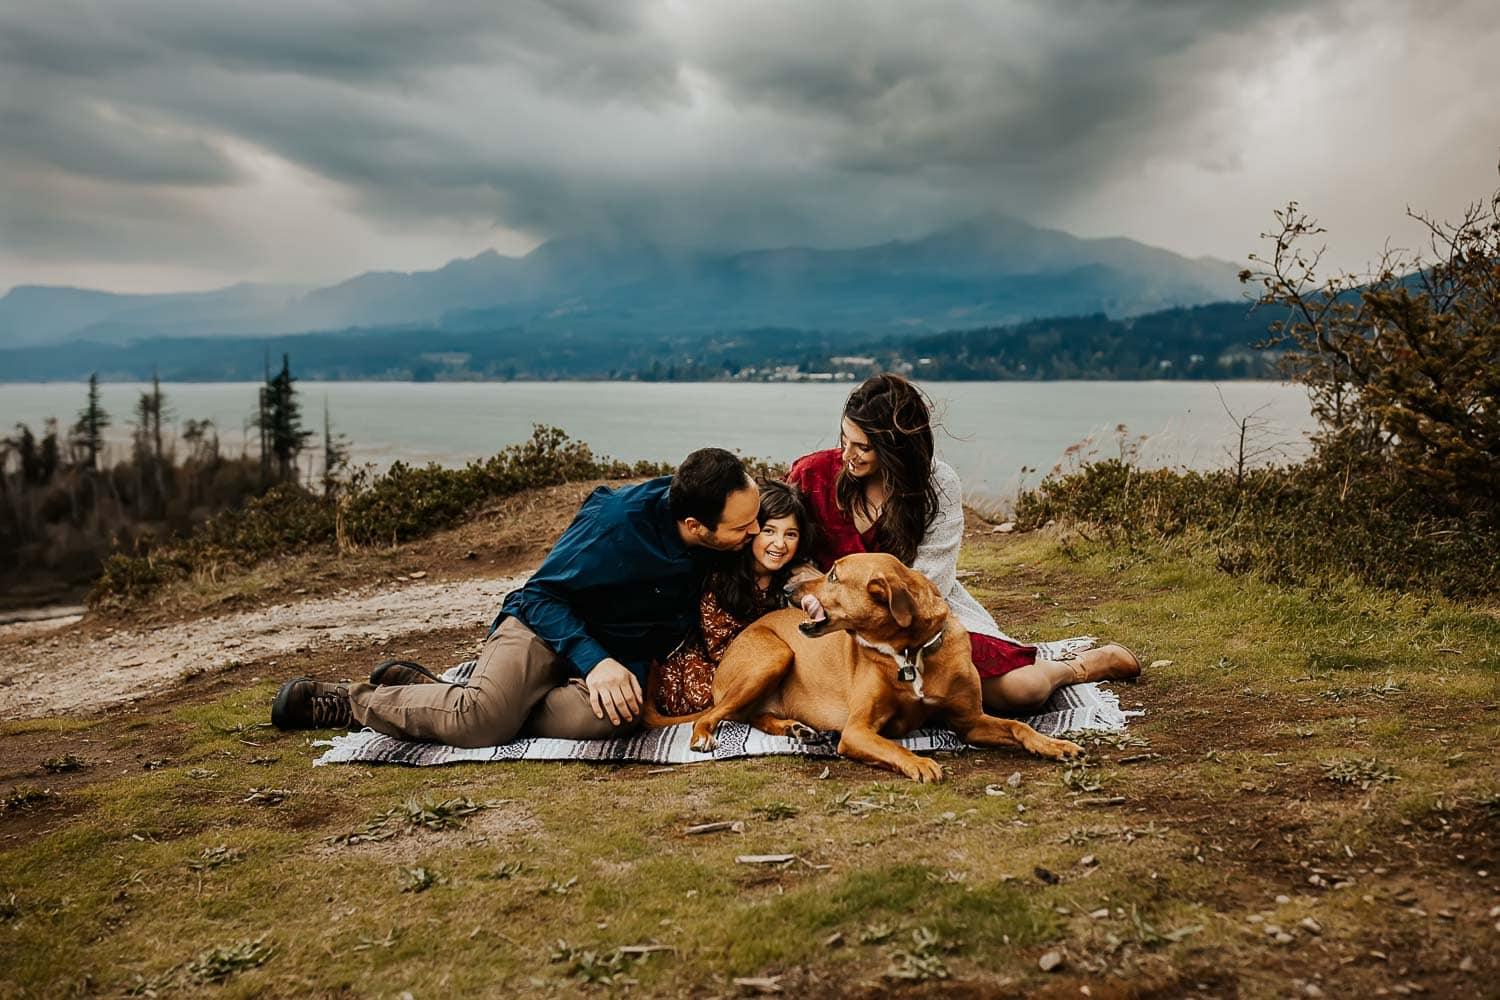 Family cuddling on blanket with their dog on a cloudy day